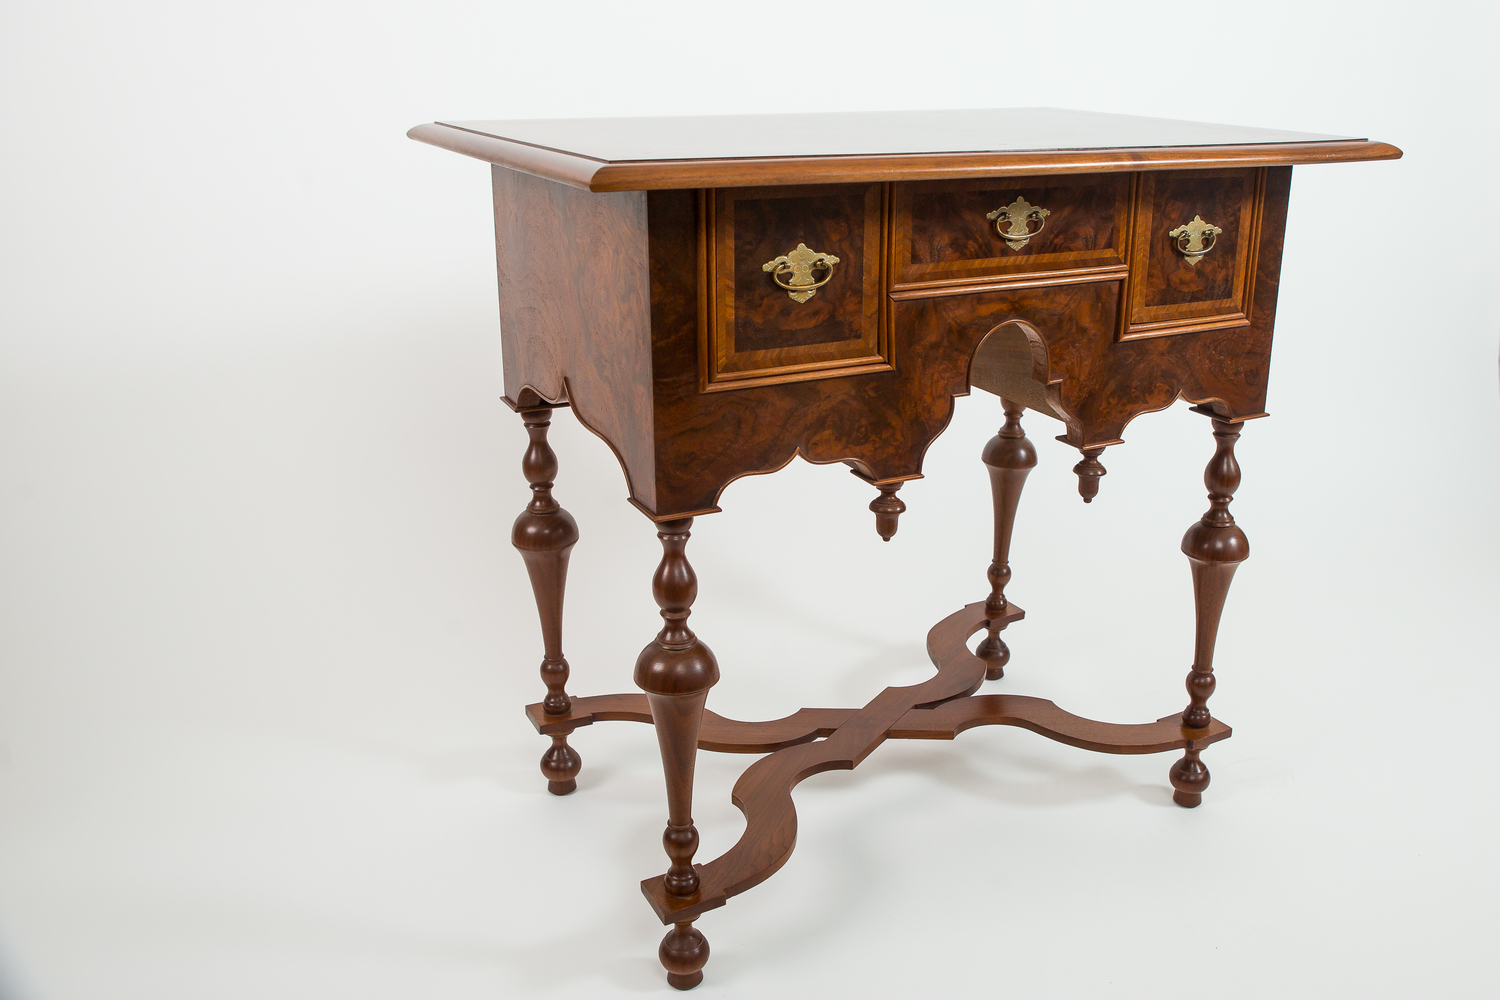 Reproduction William and Mary dressing table.